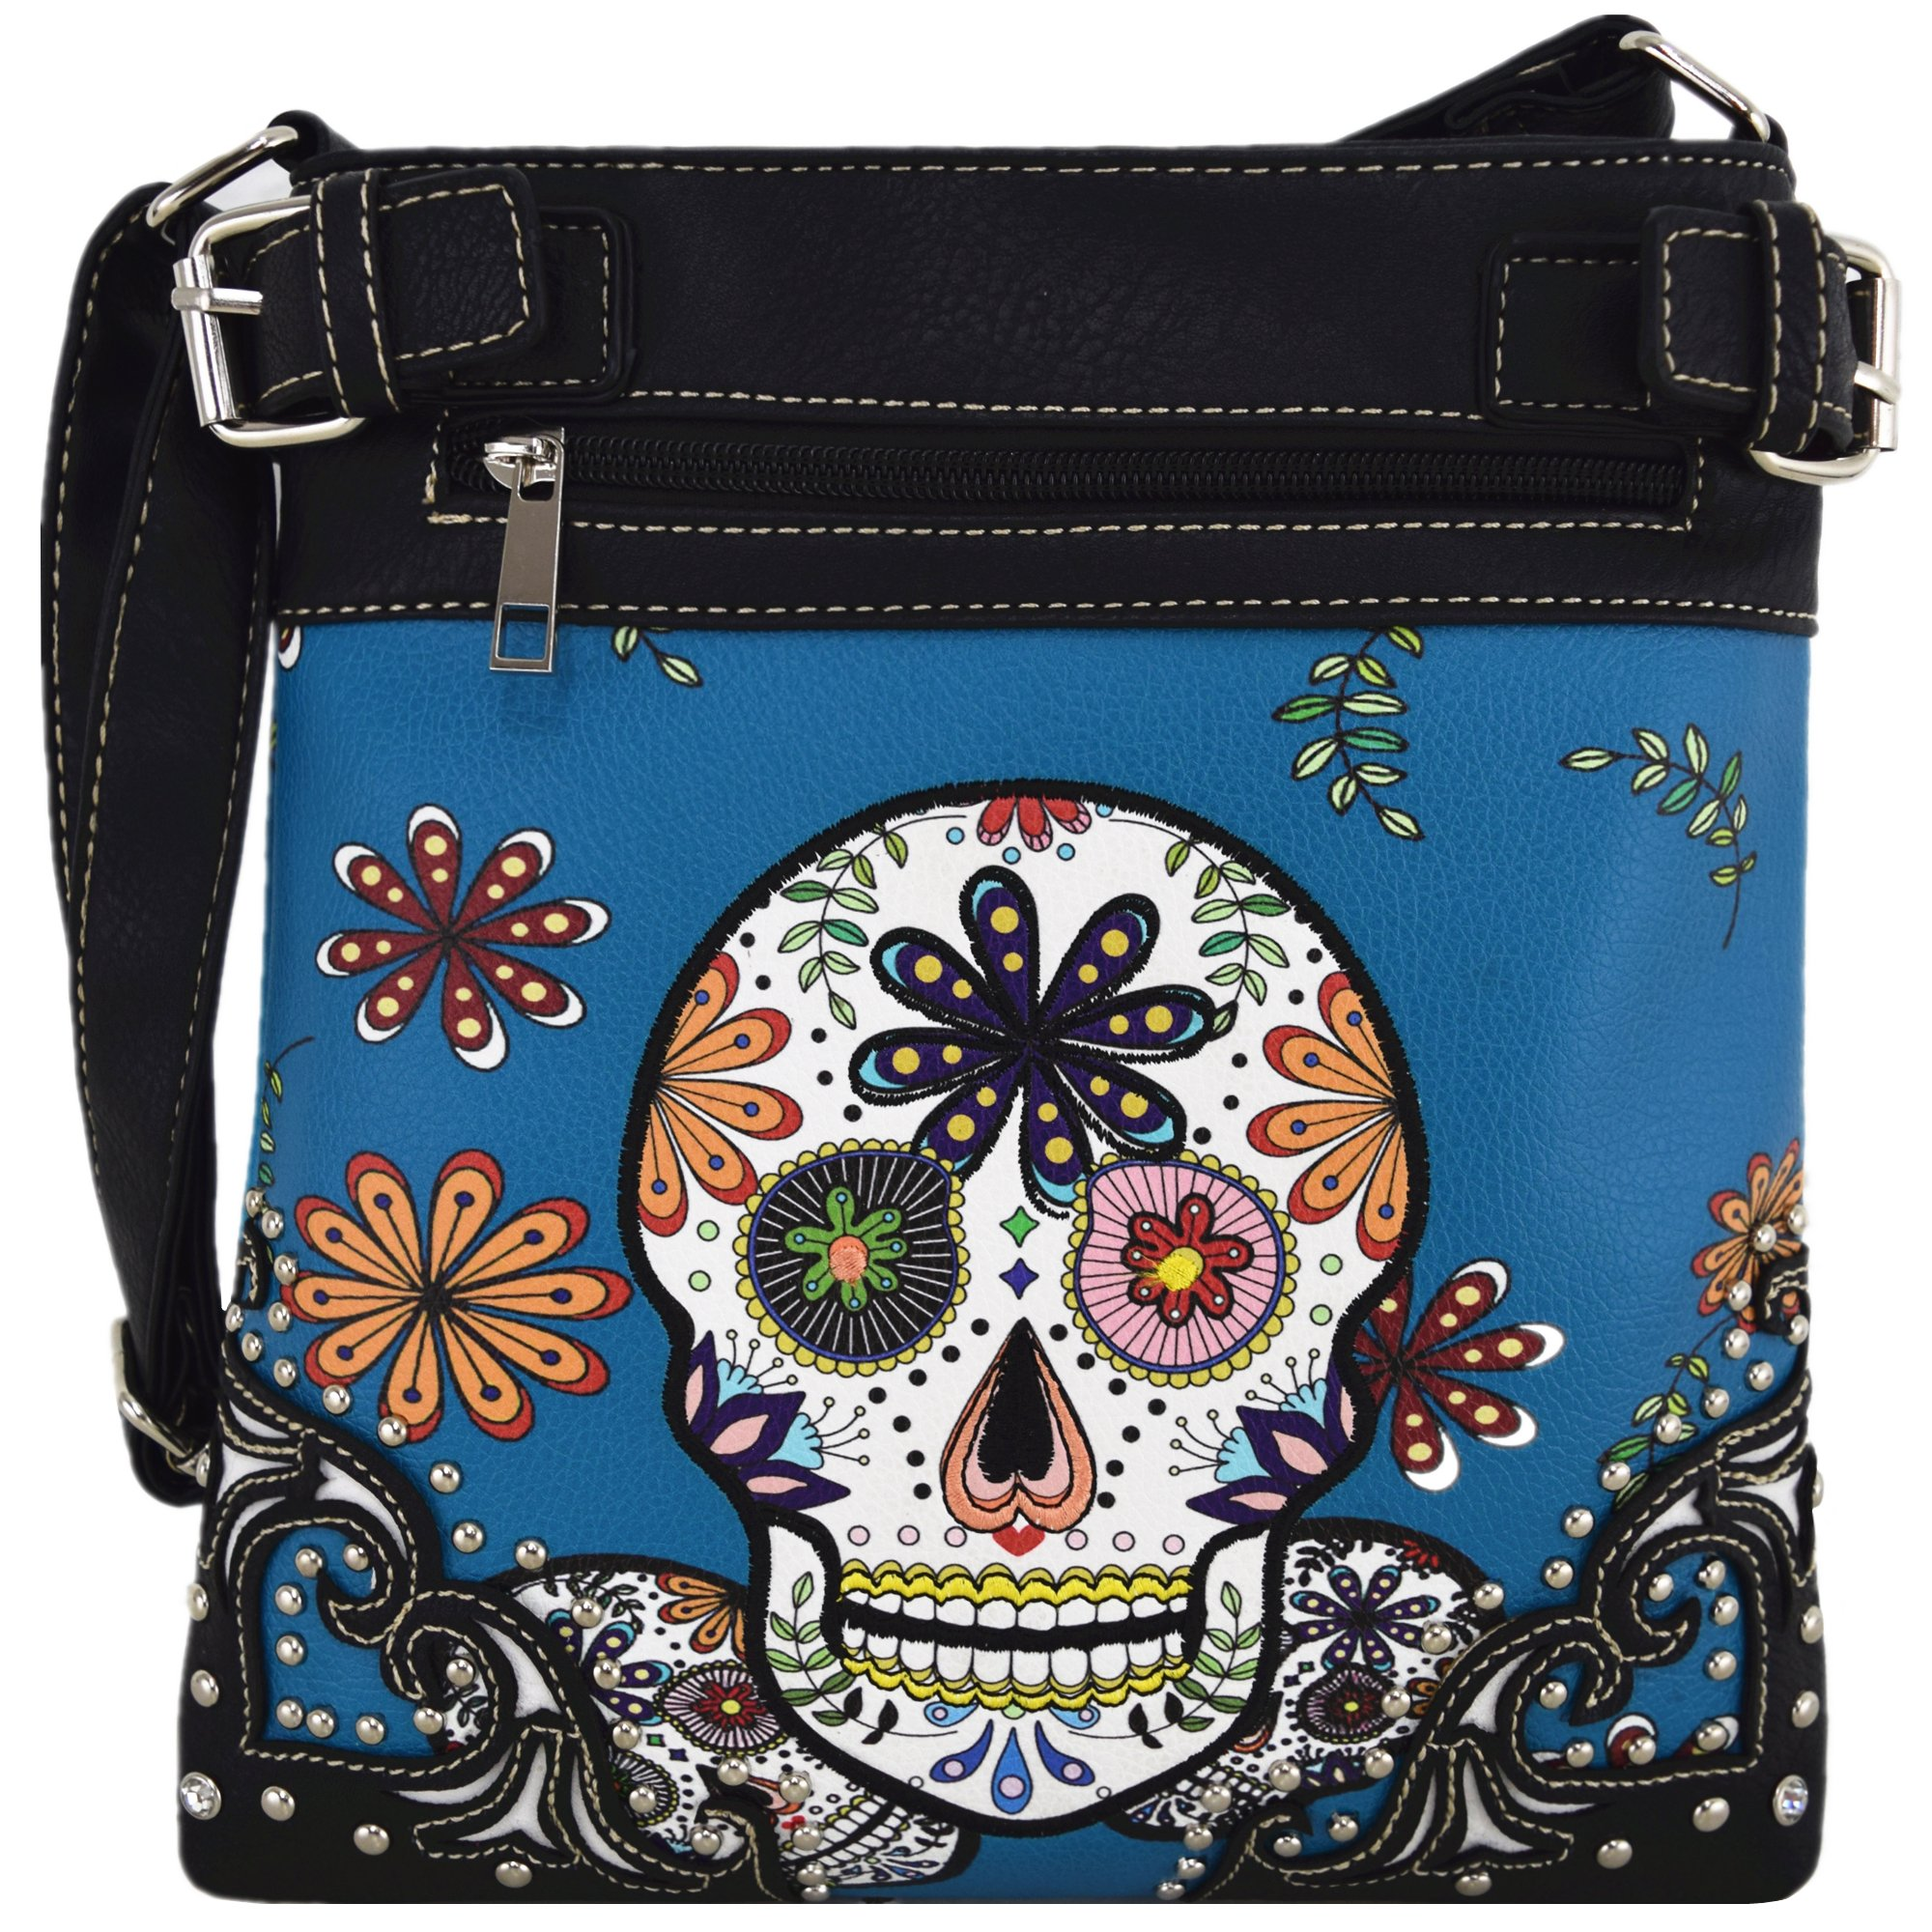 240ea0f76dd6 Cheap Concealed Carry Purses For Women, find Concealed Carry Purses ...